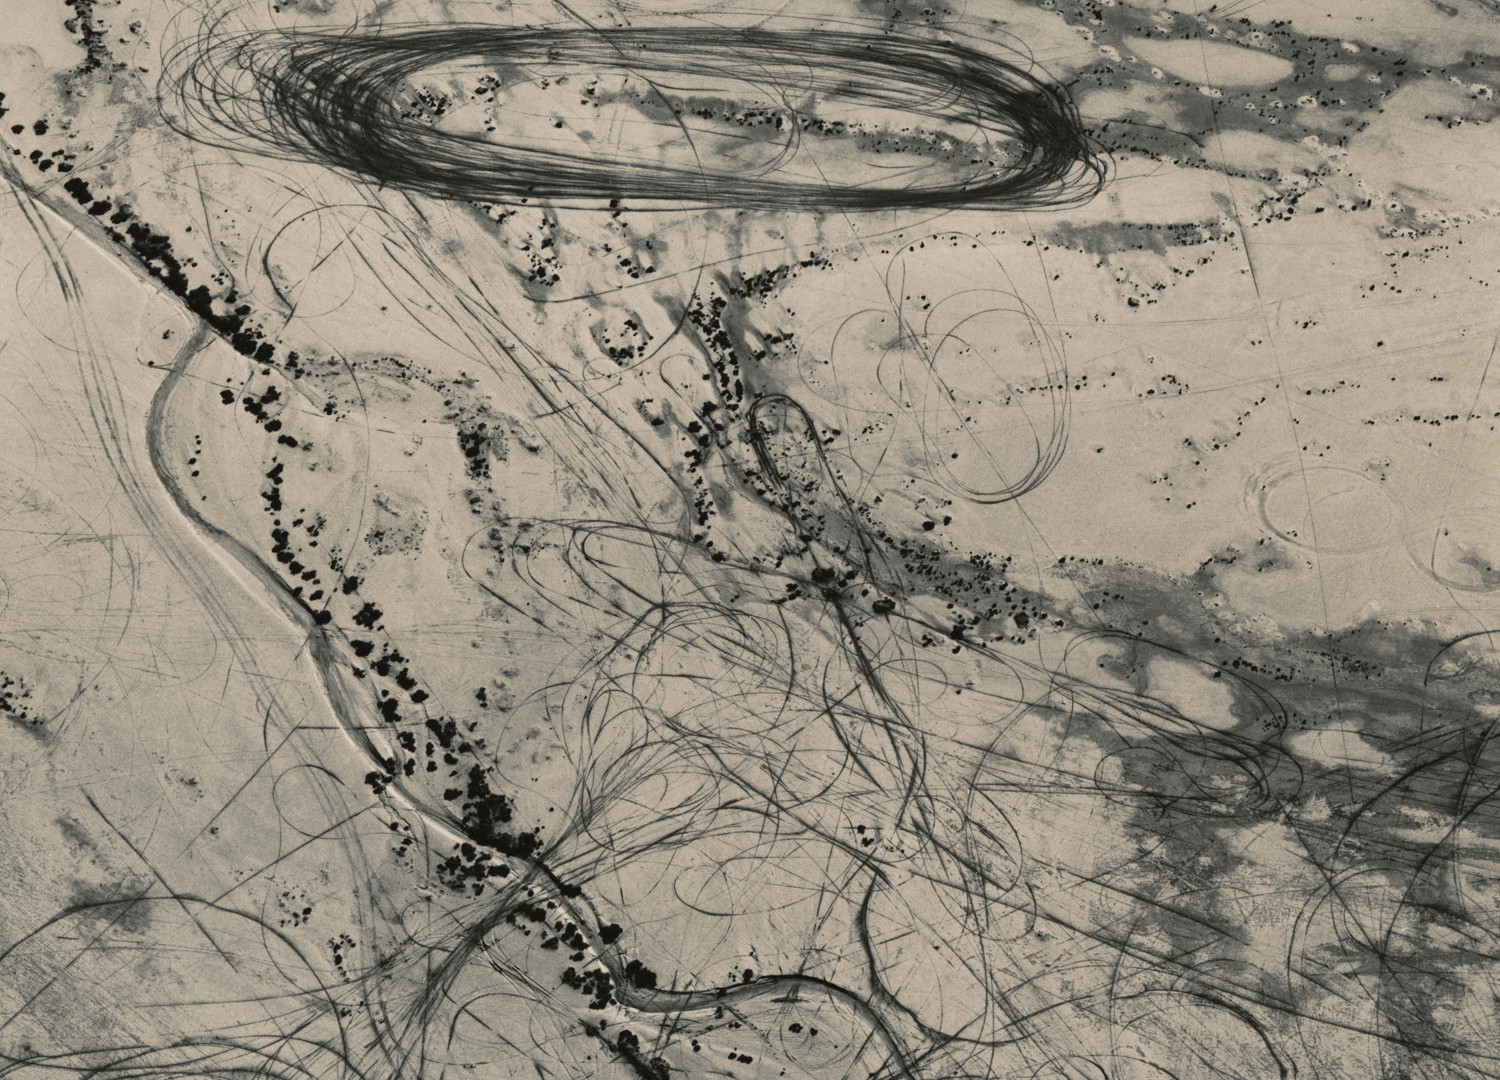 Emmet Gowin, Off Road Traffic Pattern along the Northwest Shore of the Great Salt Lake, Utah , 1988